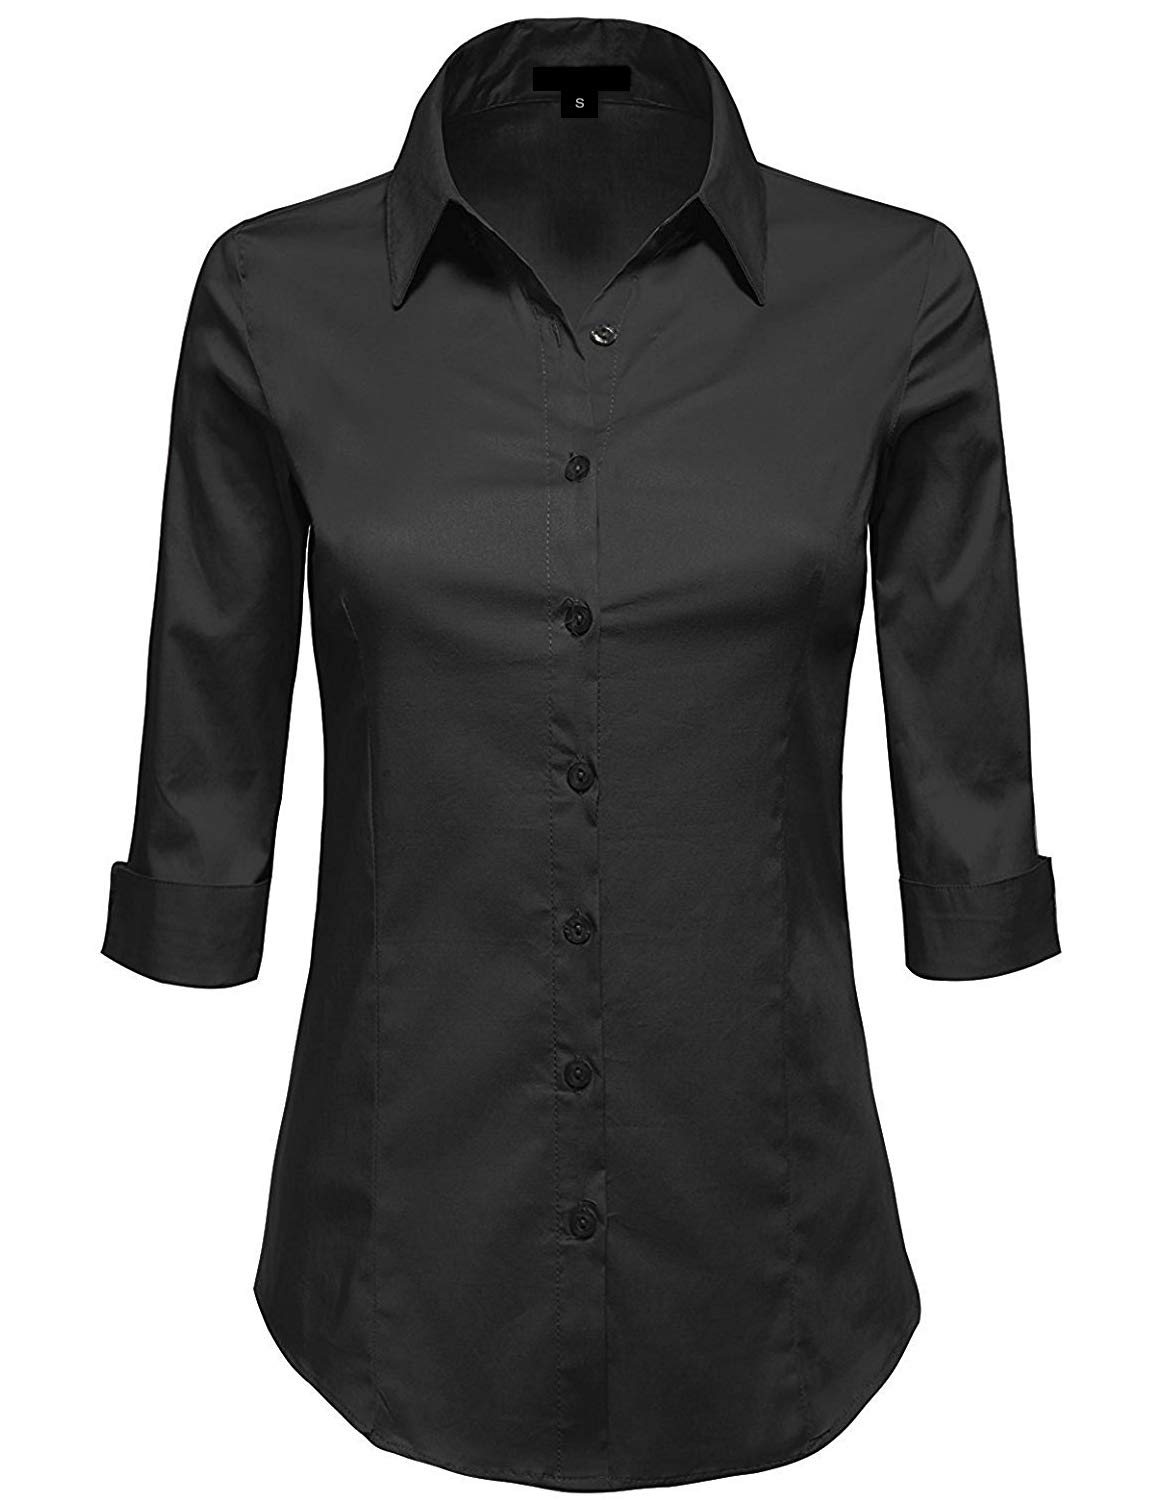 MAYSIX APPAREL Plus Size 3/4 Sleeve Stretchy Button Down Collar Office Formal Shirt Blouse For Women BLACK 1XL